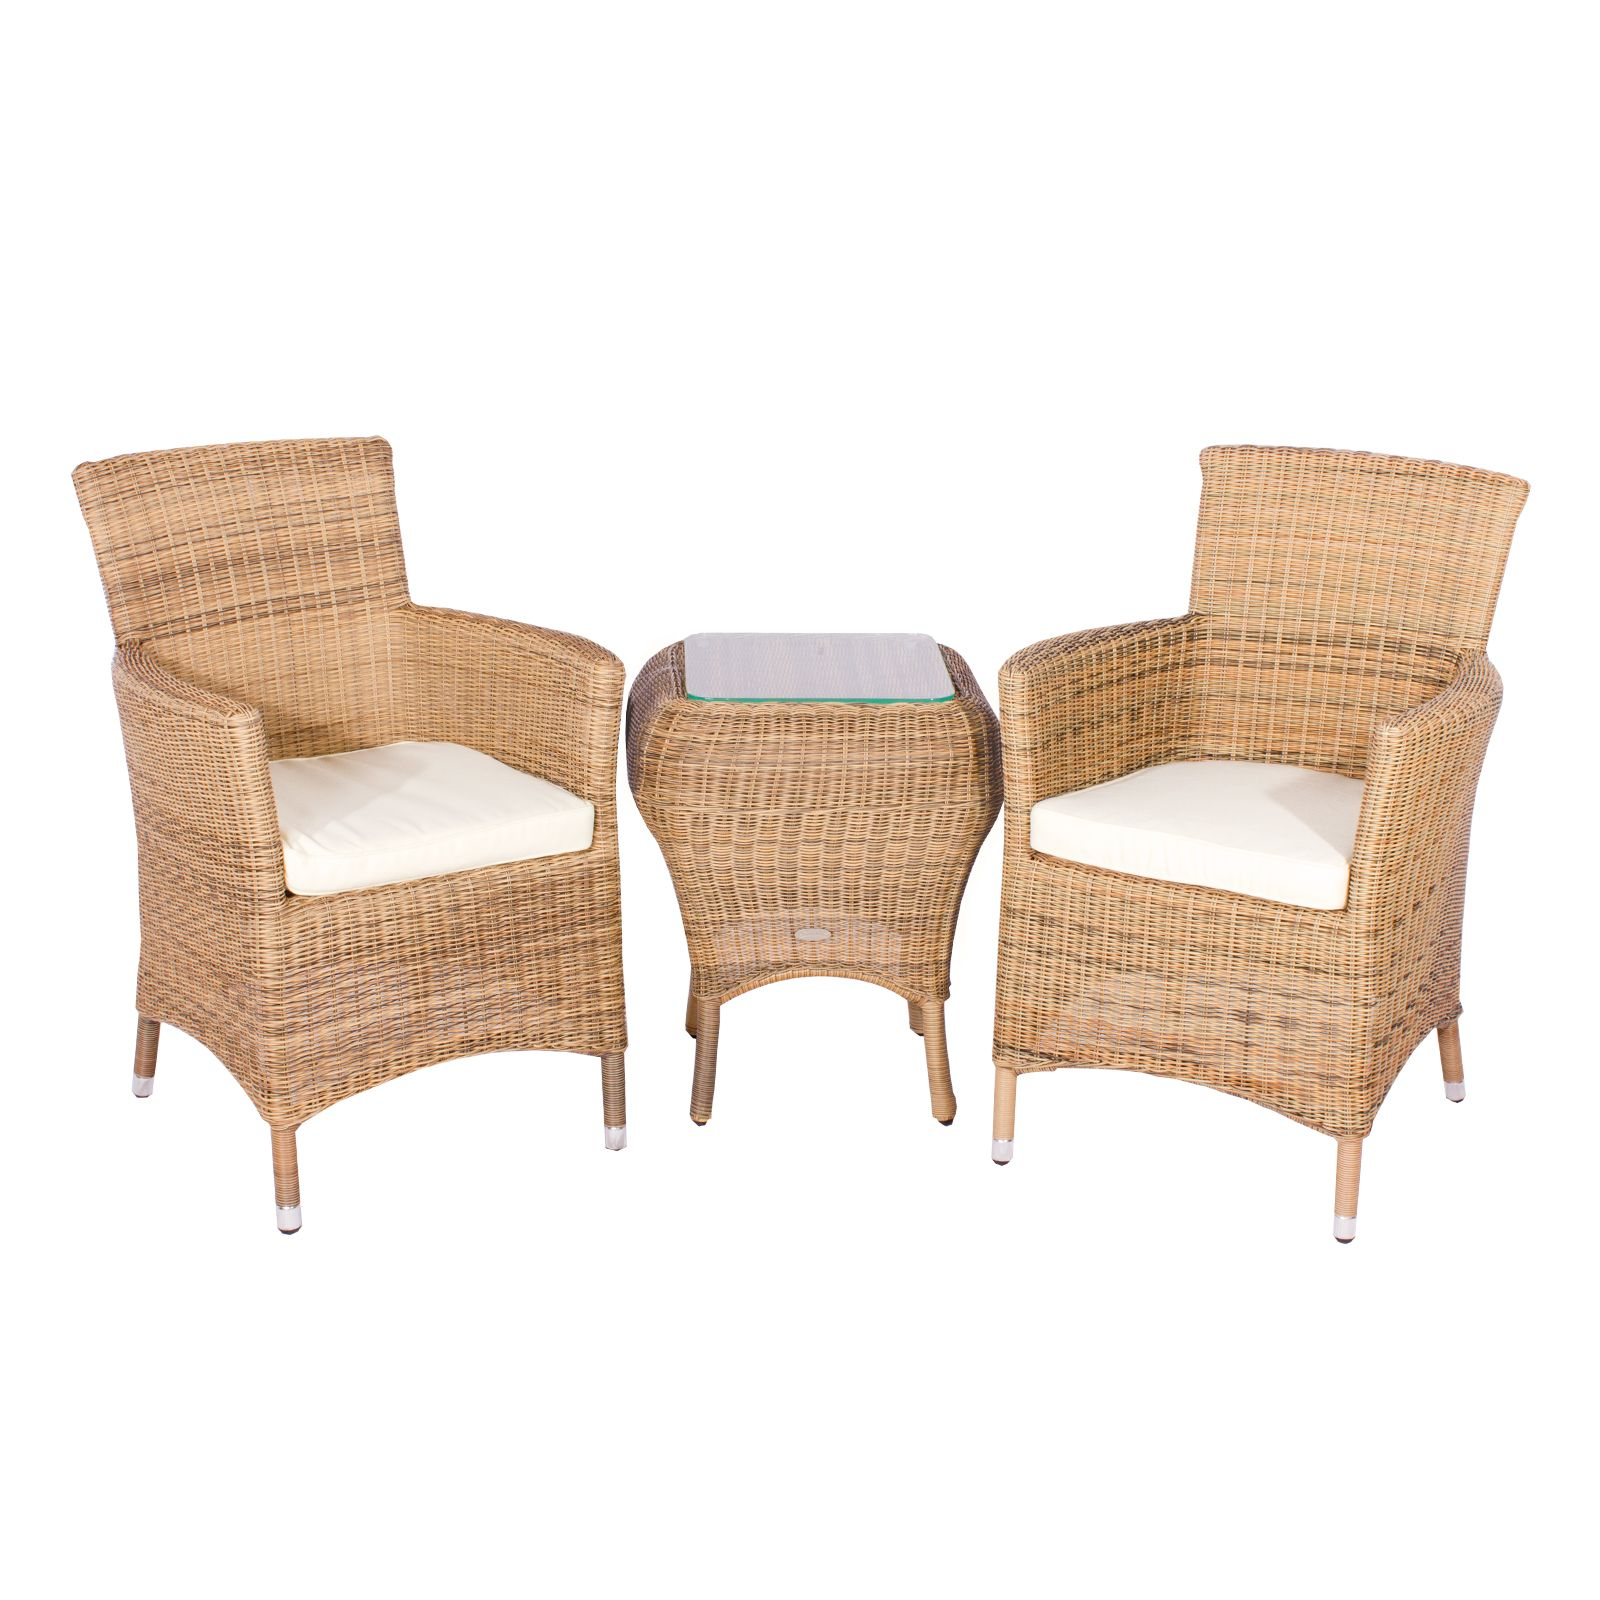 Buy Cheap Rattan Garden Furniture Compare Sheds Garden Furniture Prices For Best Uk Deals